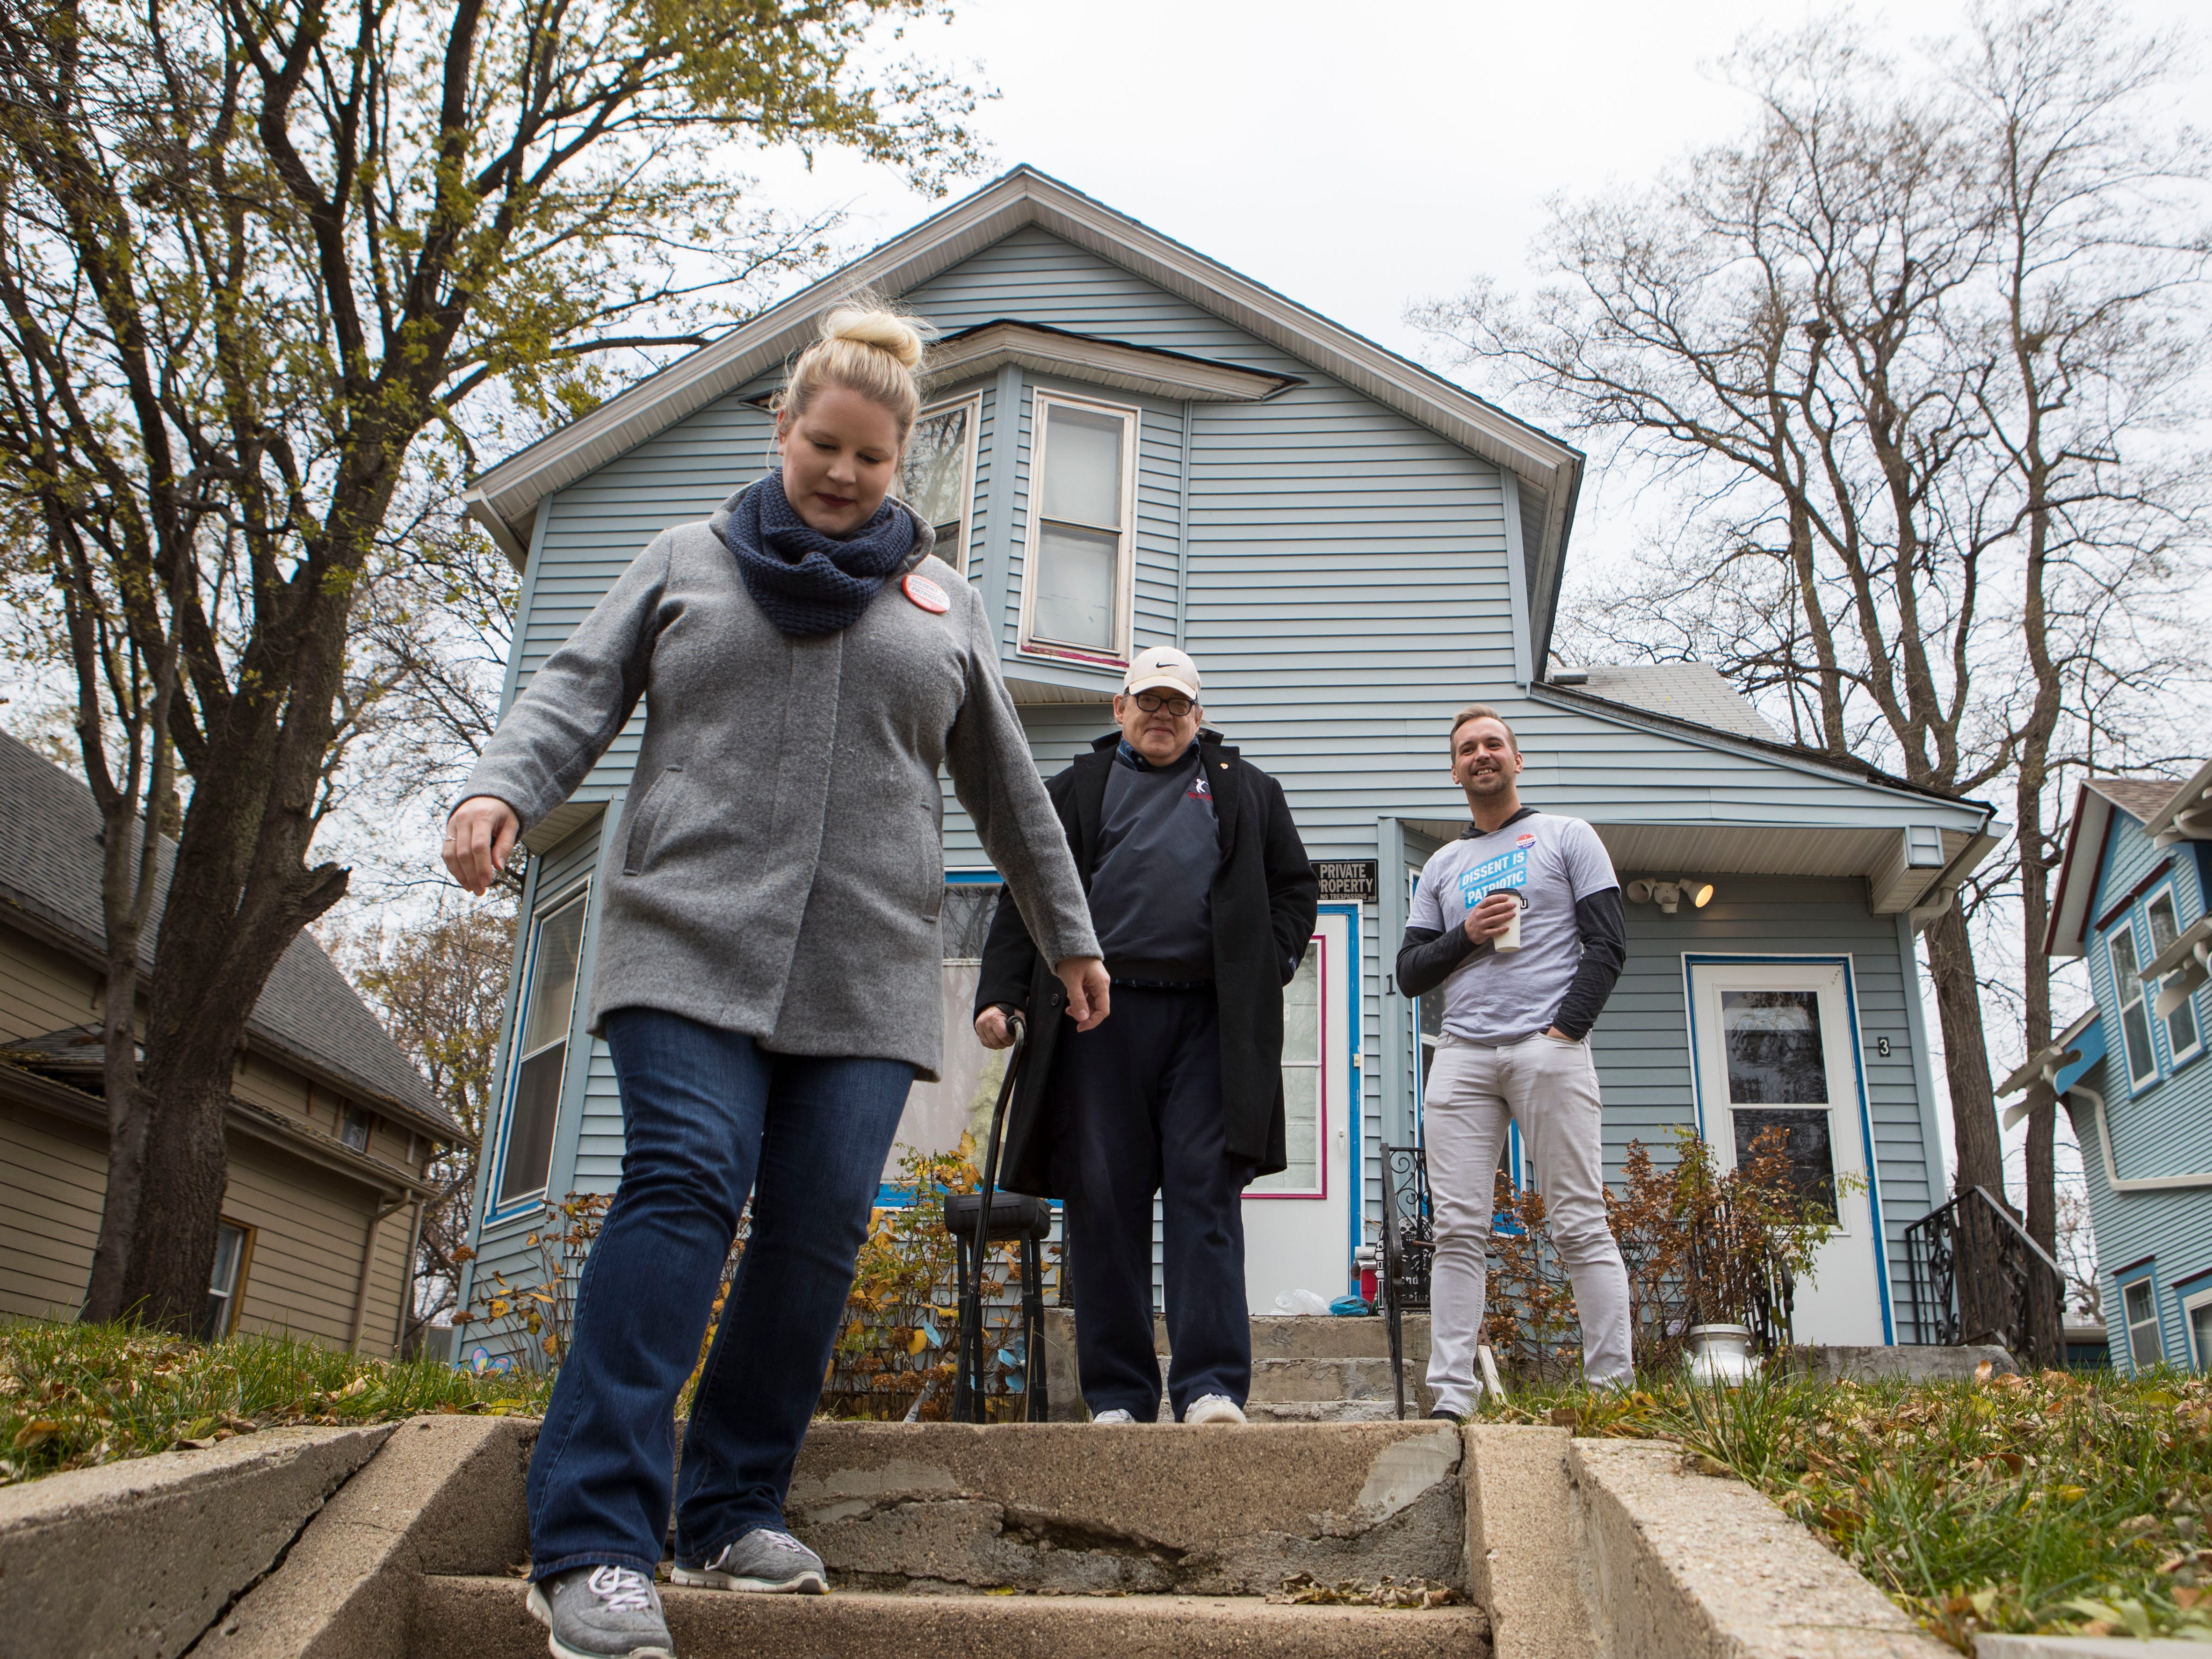 Luke Alton Huber and Kirsten Wichern, ACLU volunteers, pick up Larry Loebig (center) at his home and take him to First Lutheran Church, his voting center, in Sioux Falls, S.D., Tuesday, Nov. 6, 2018.